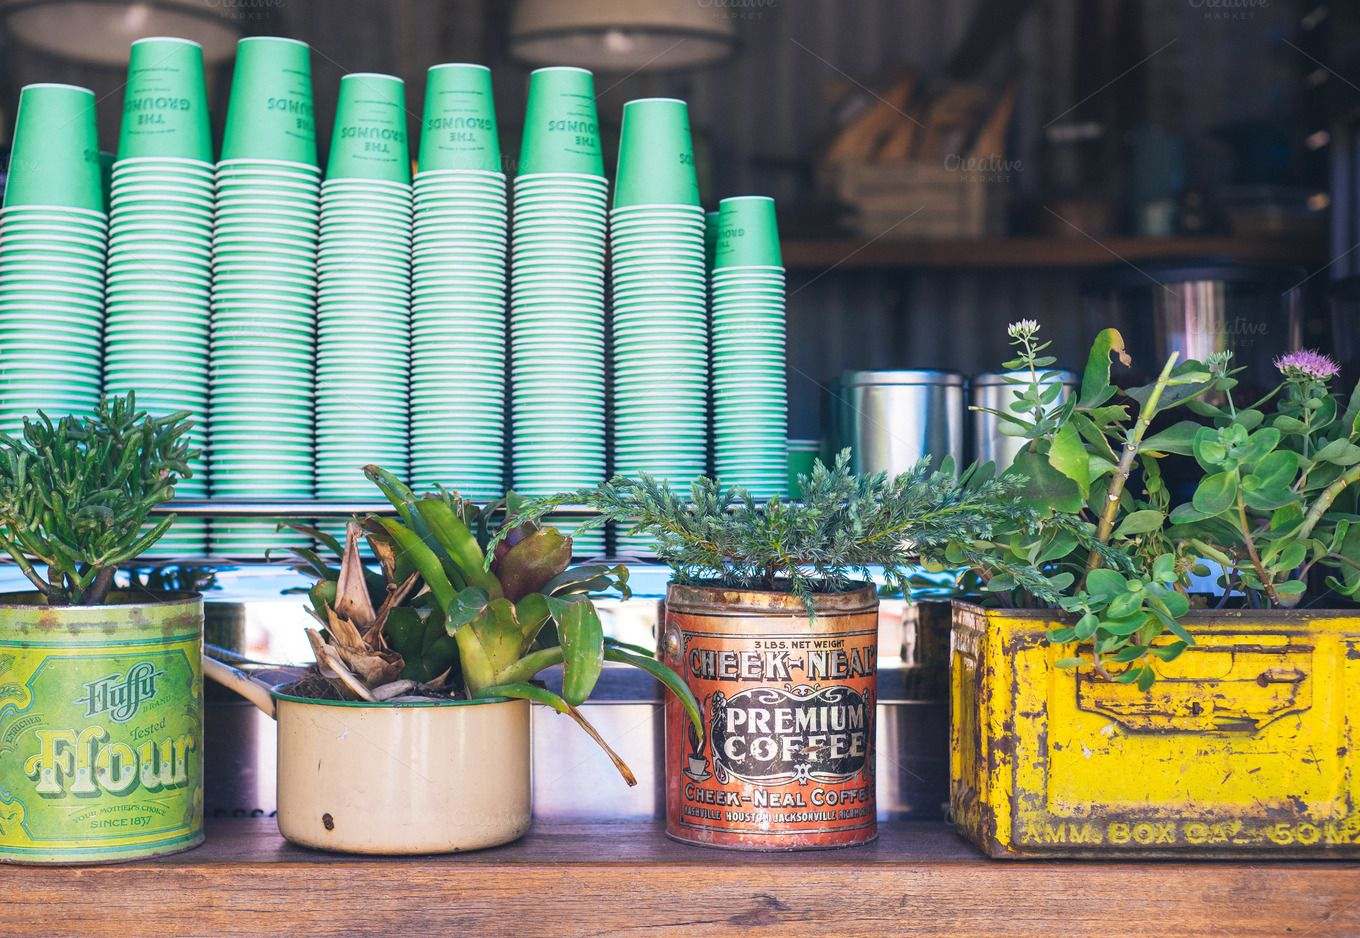 Vintage Hipster coffee bar | Hipster coffee, Vintage hipster and Bar